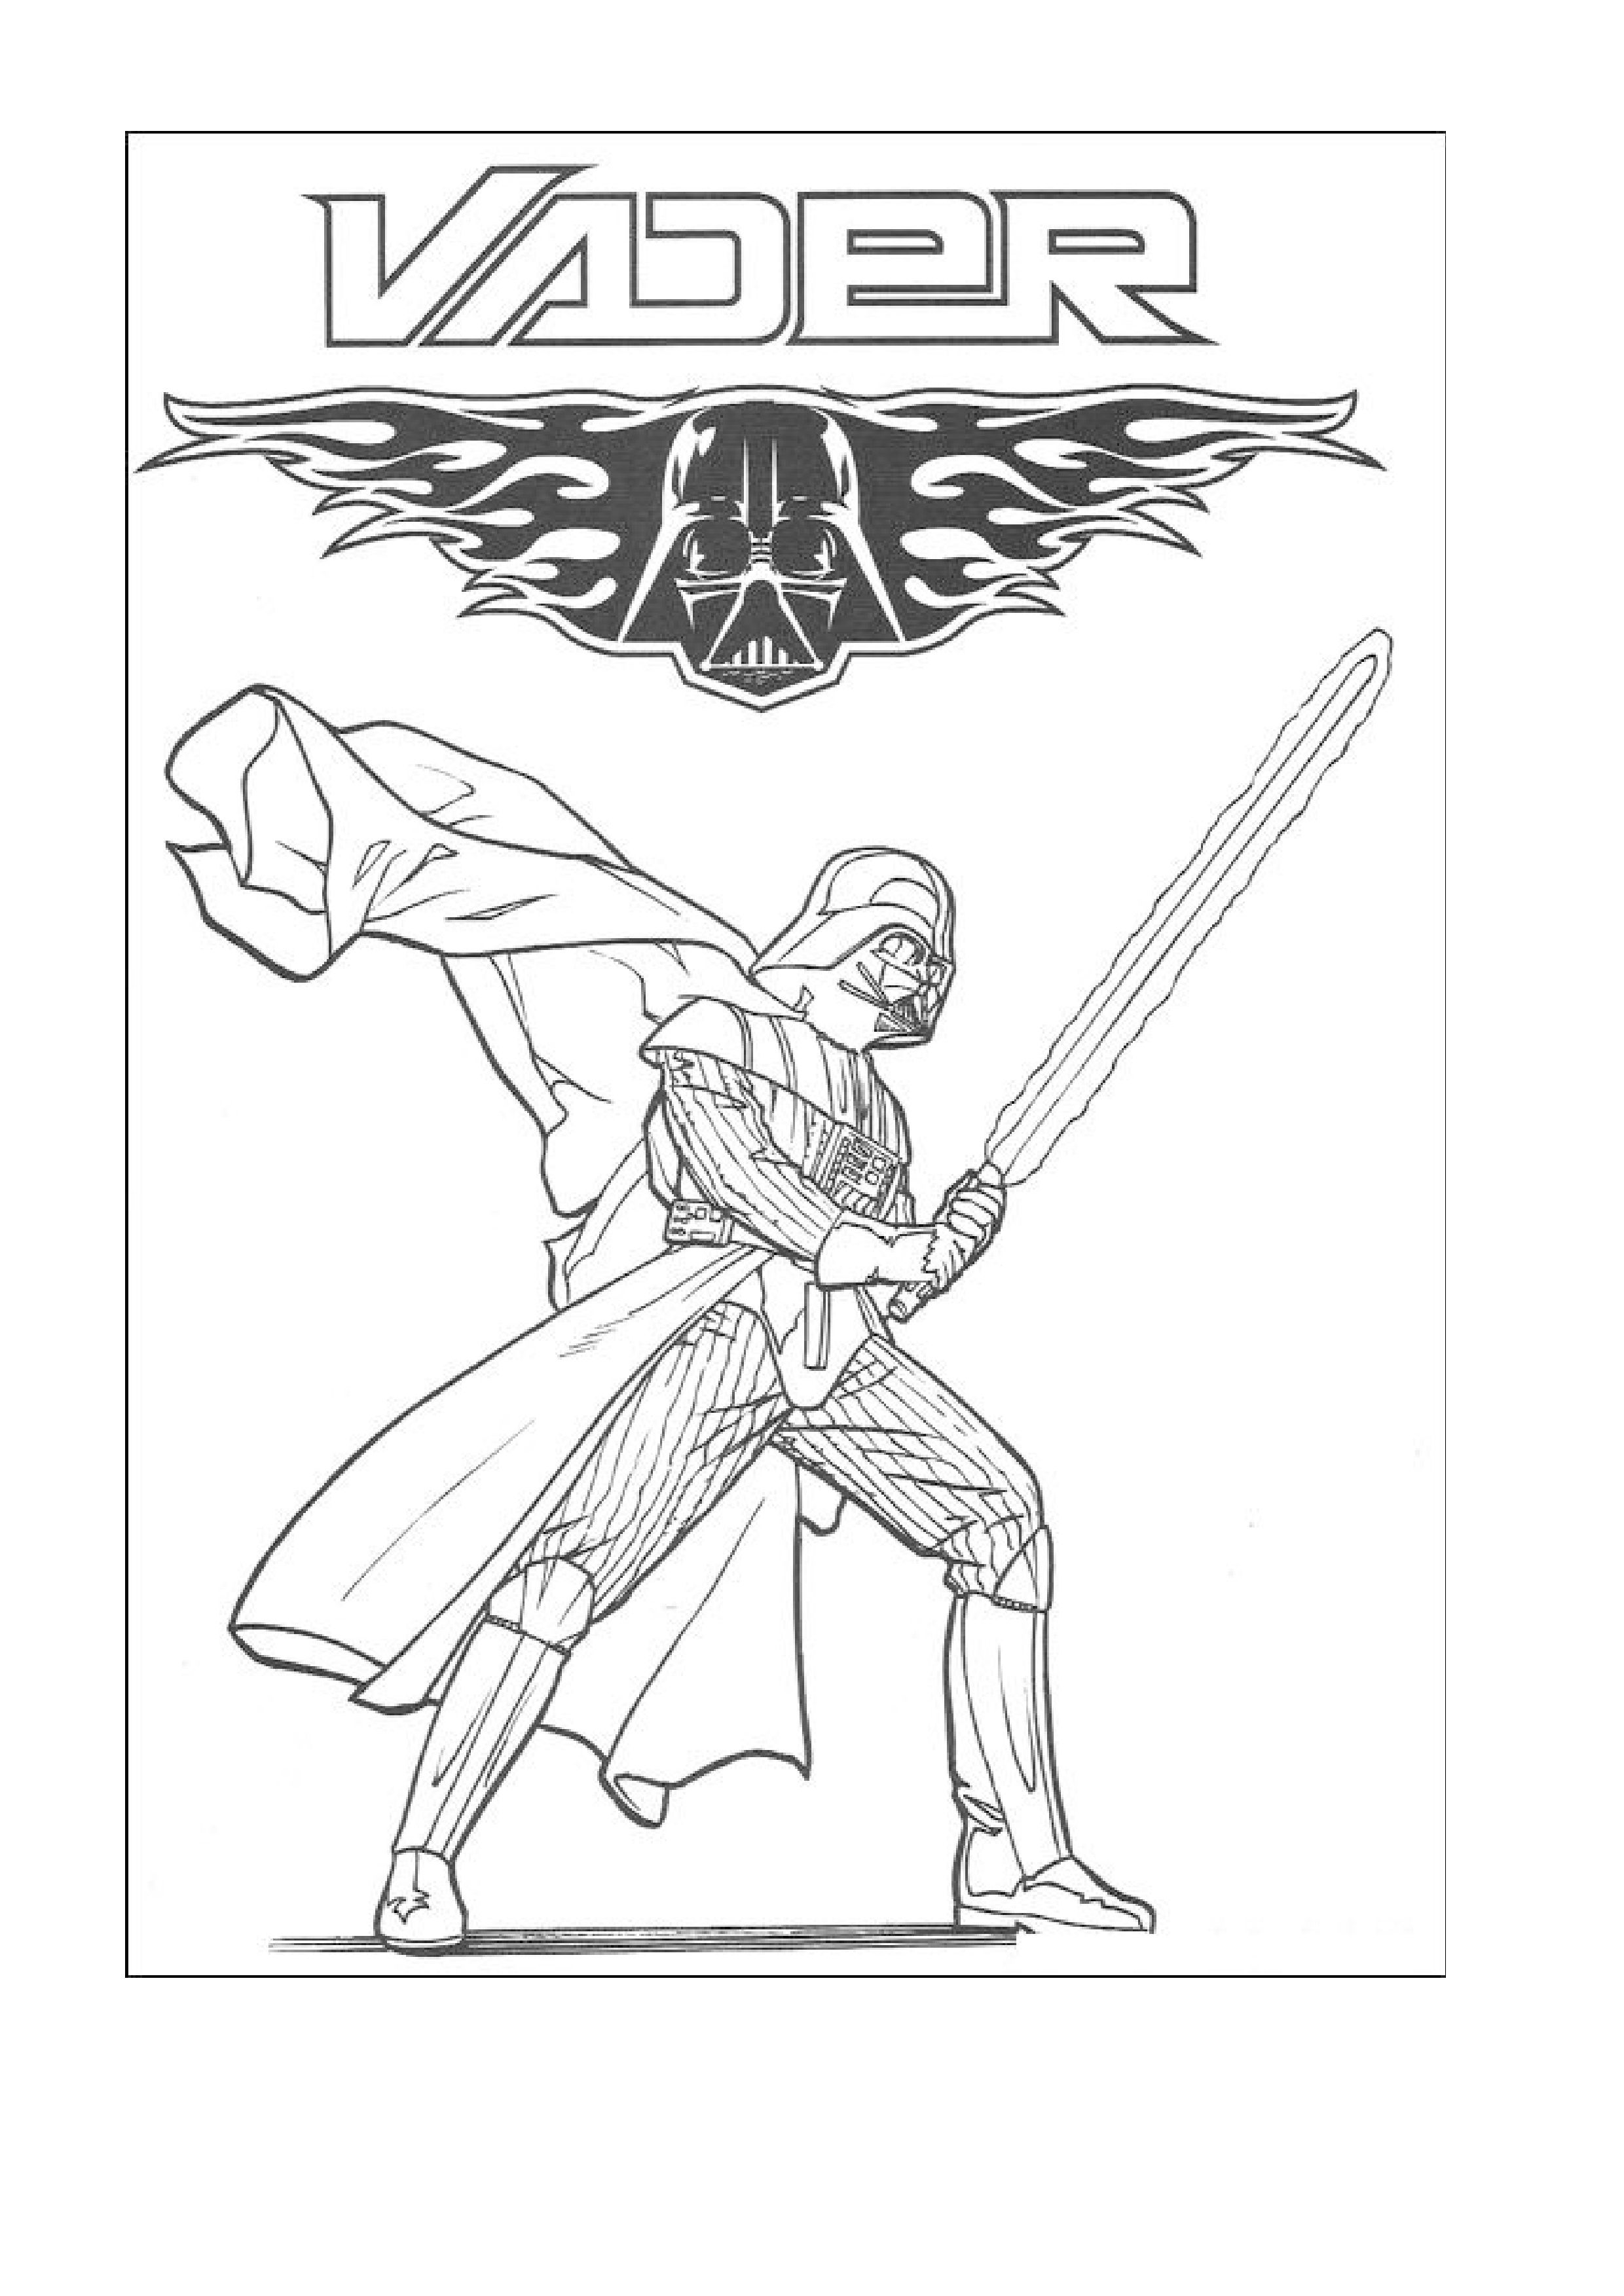 Darth Vader Coloring Page | Space coloring pages, Coloring ...